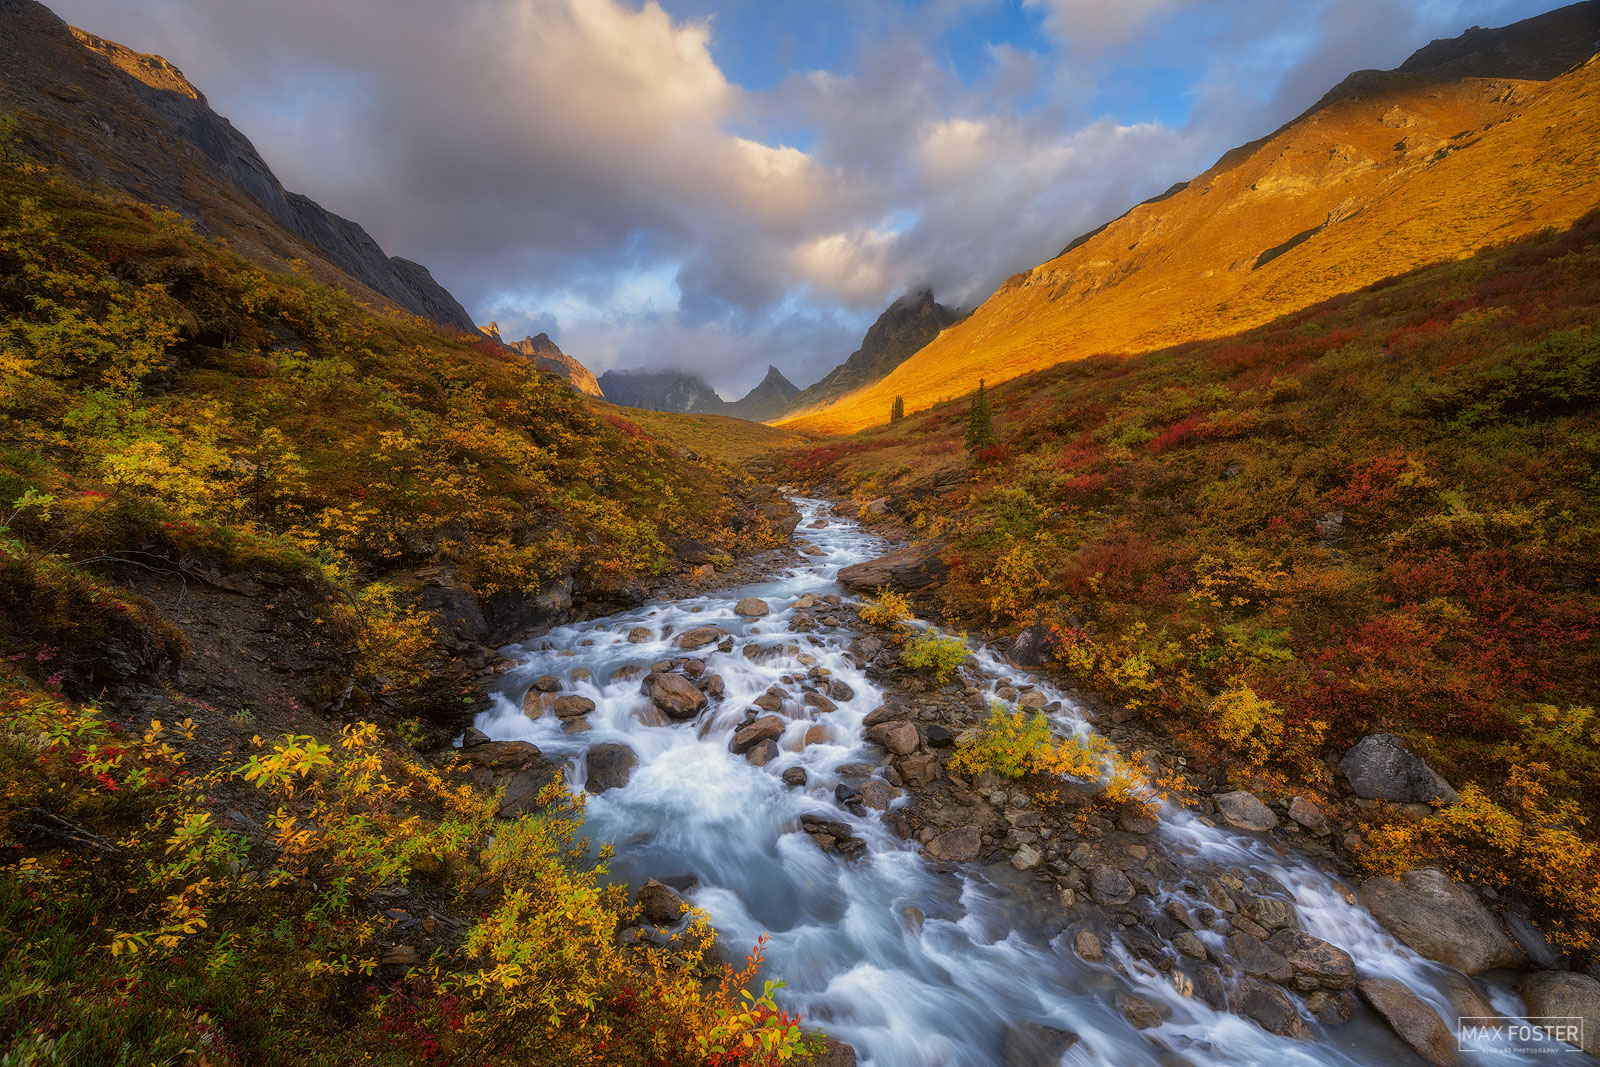 Arrigetch Peaks Wilderness, Gates of the Arctic National Park, Alaska, photo